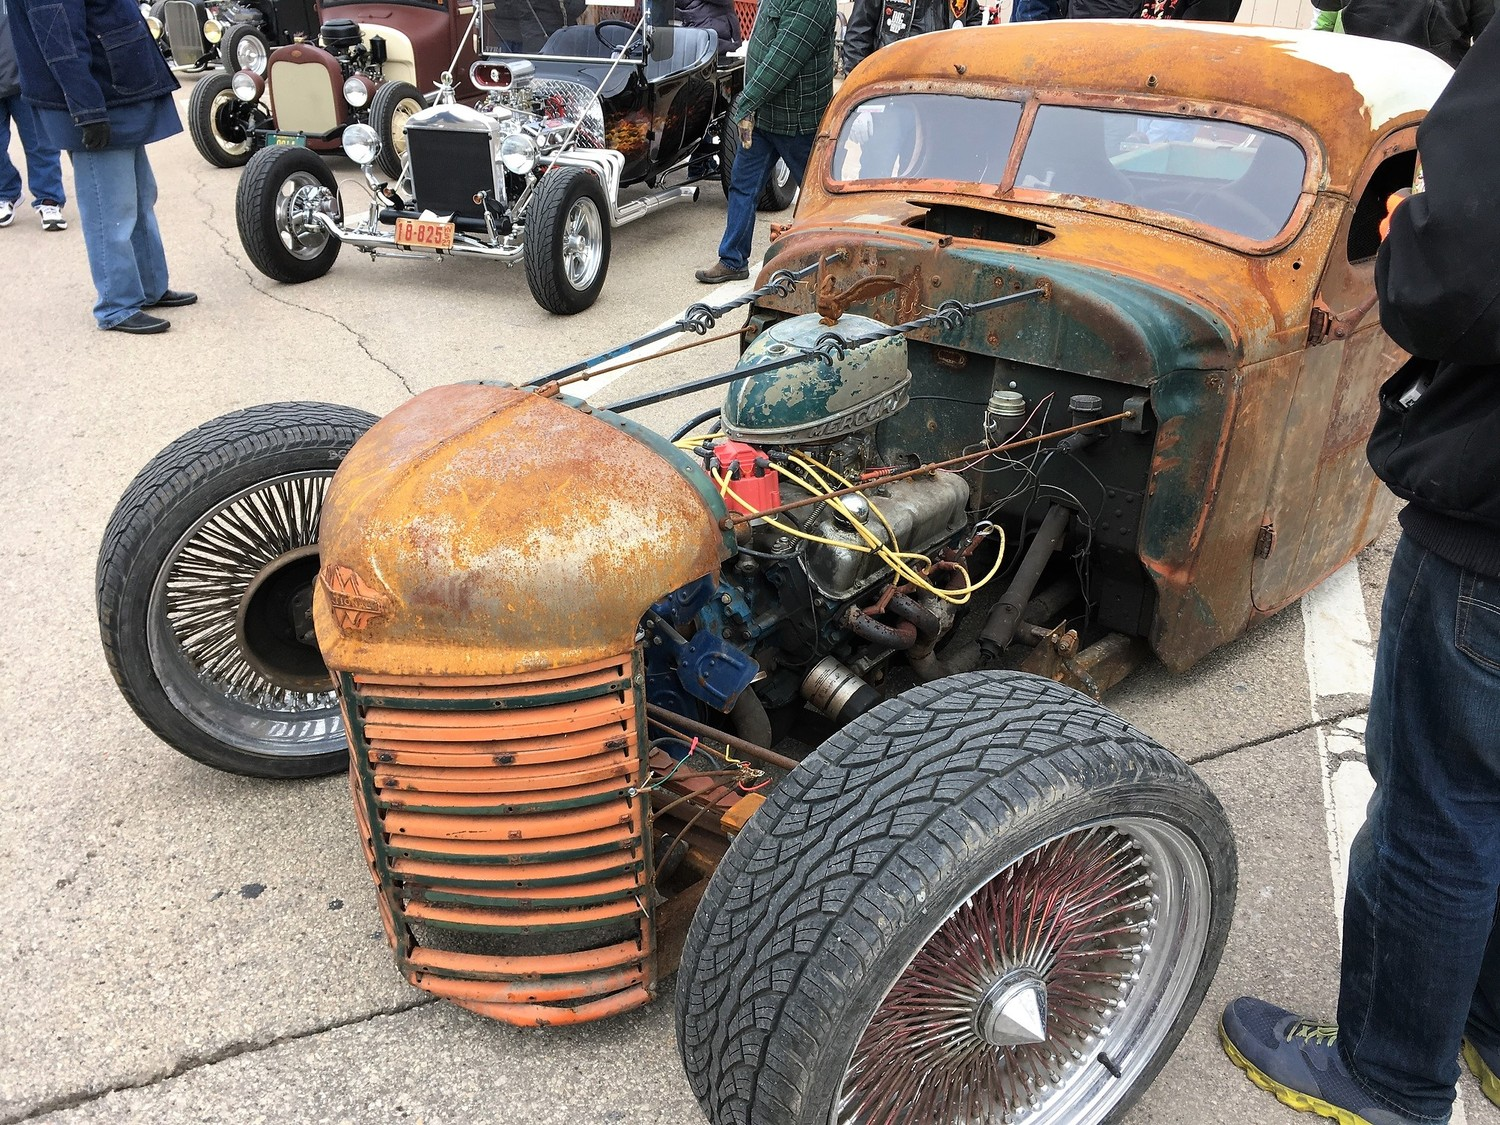 Inaugural Polar-Rama puts hot rods on ice in Wisconsin - ClassicCars ...